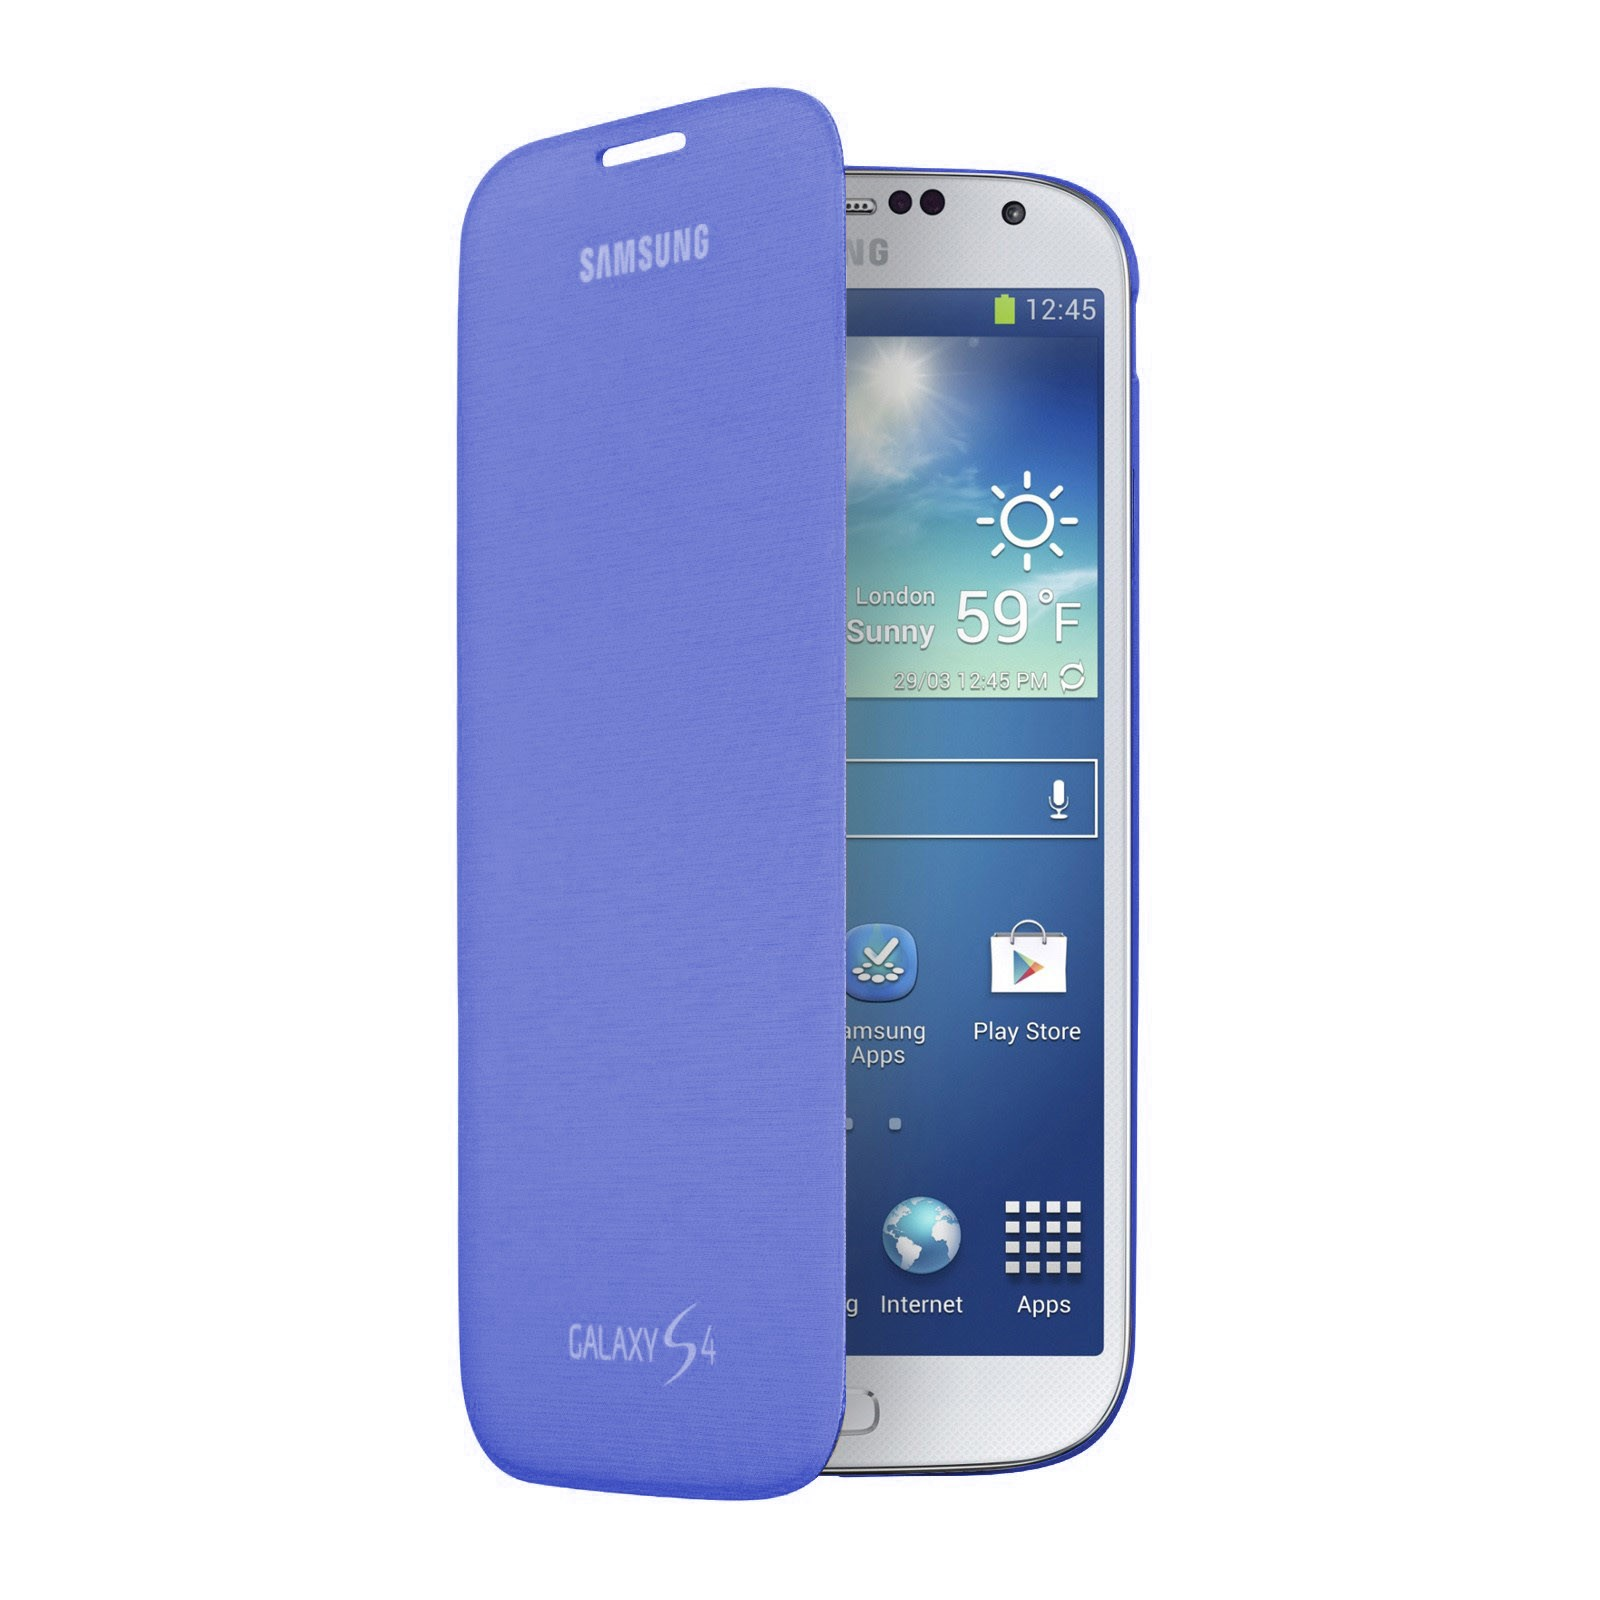 Samsung Flip Cover Case for Galaxy S4